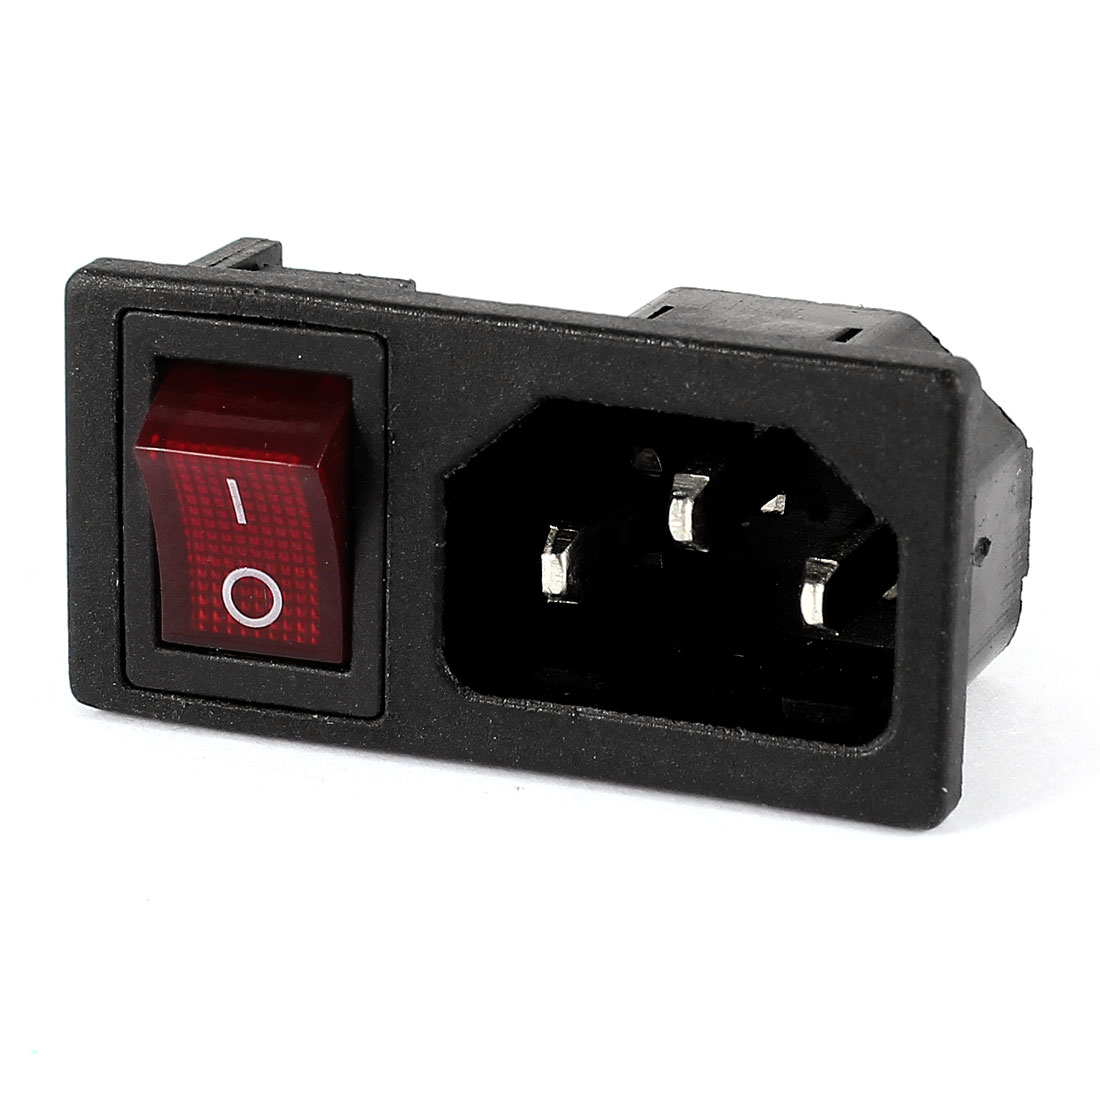 Panel Mount IEC320 C14 Inlet Power Socket On/Off SPST Red Rocker Switch AC 250V 10A